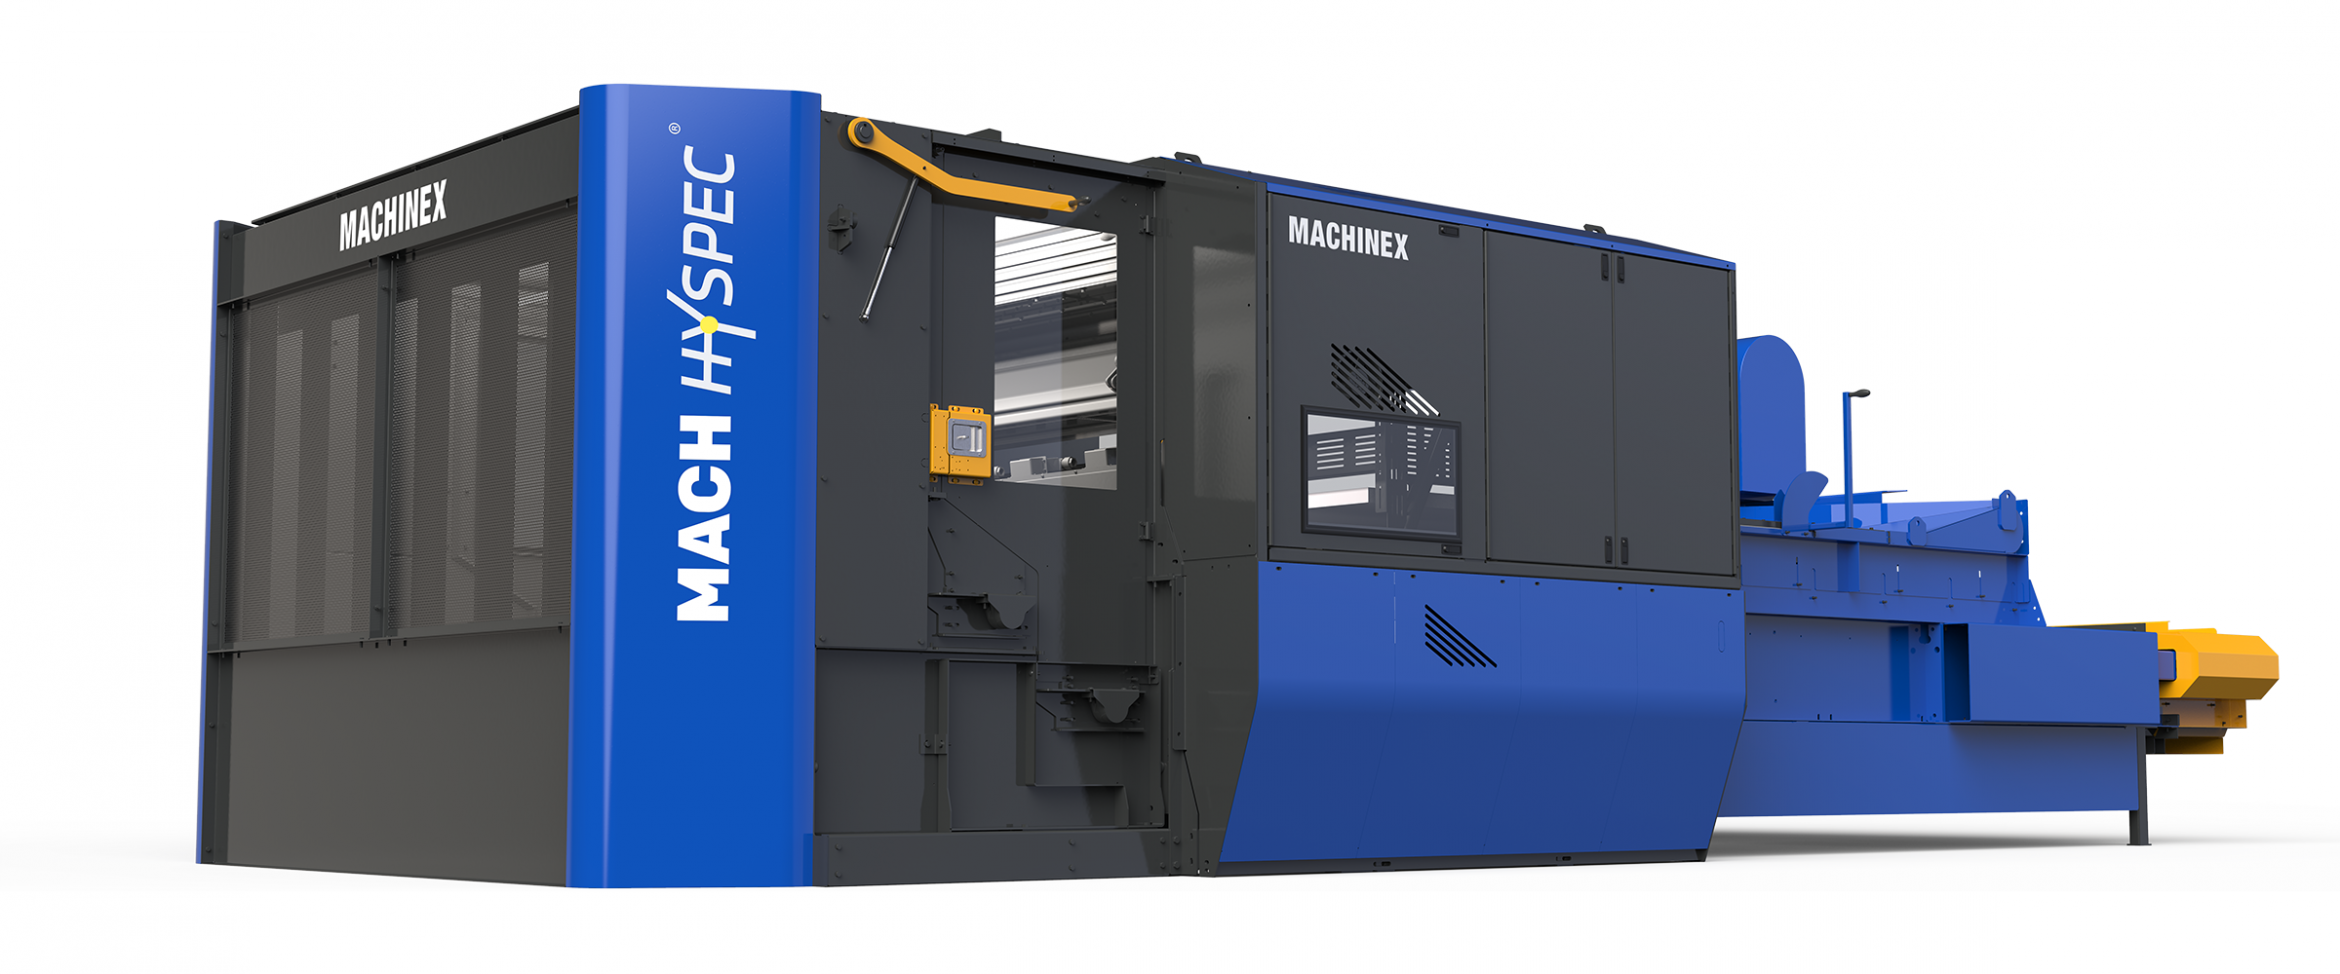 Mach Hyspec optical sorter preview